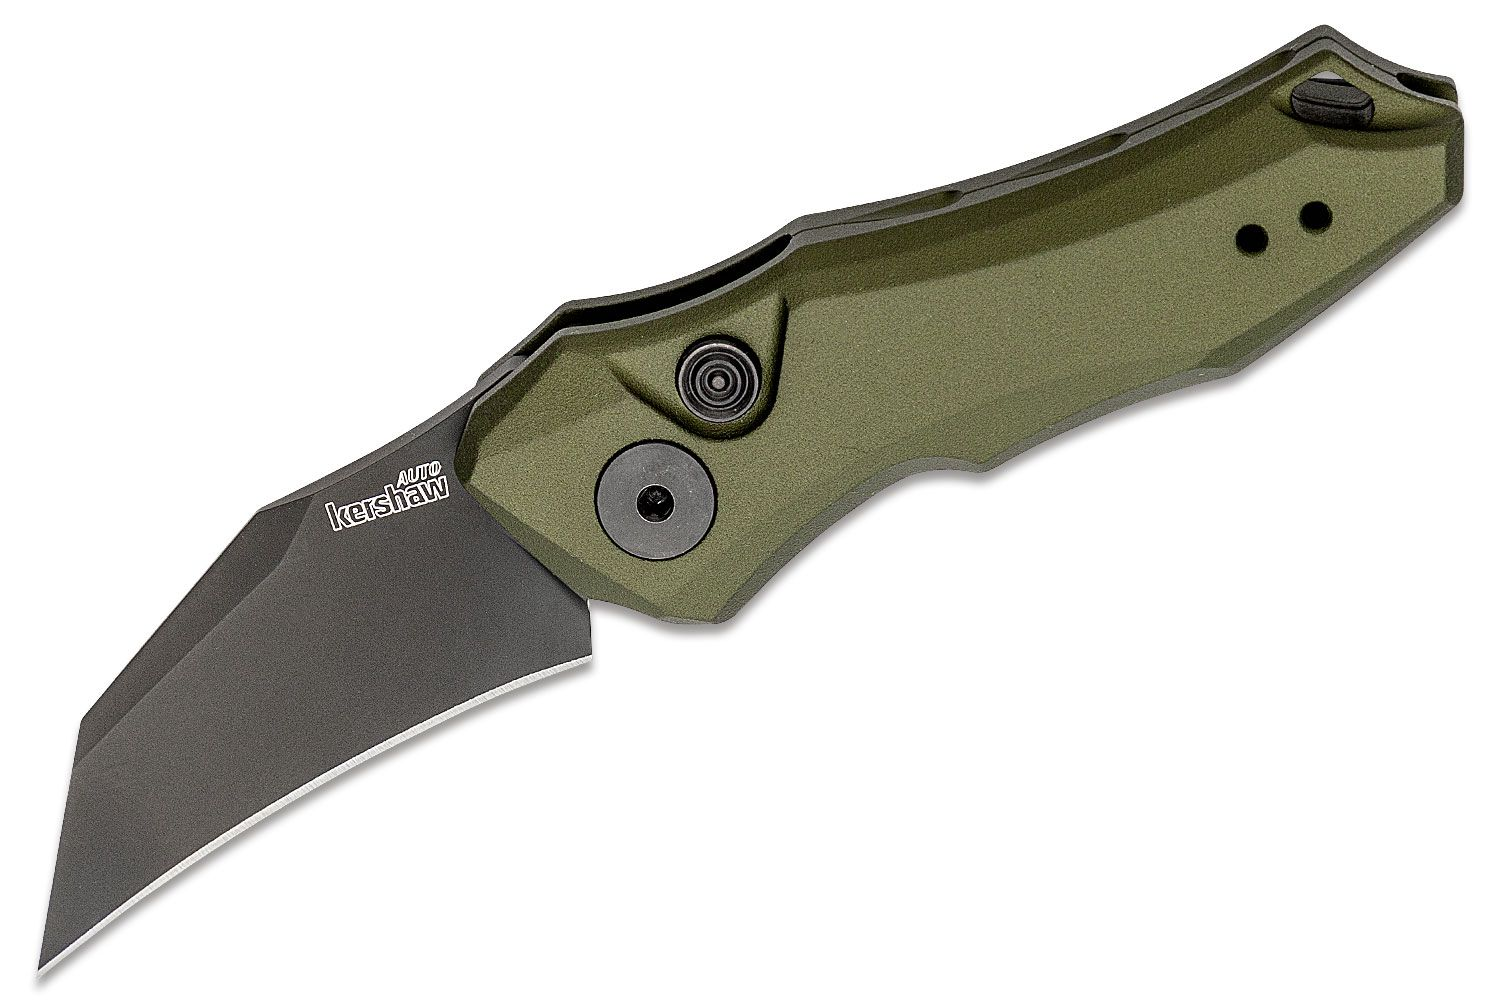 Kershaw 7350OLBLK Launch 10 AUTO Folding Knife 1.9 inch Black CPM-154 Hawkbill Blade, OD Green Anodized Aluminum Handles